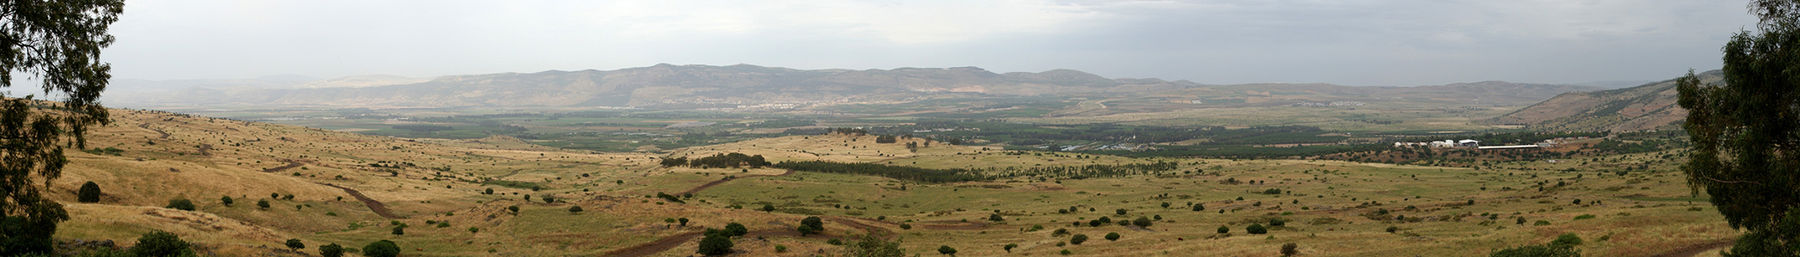 Golan Heights banner2.jpg